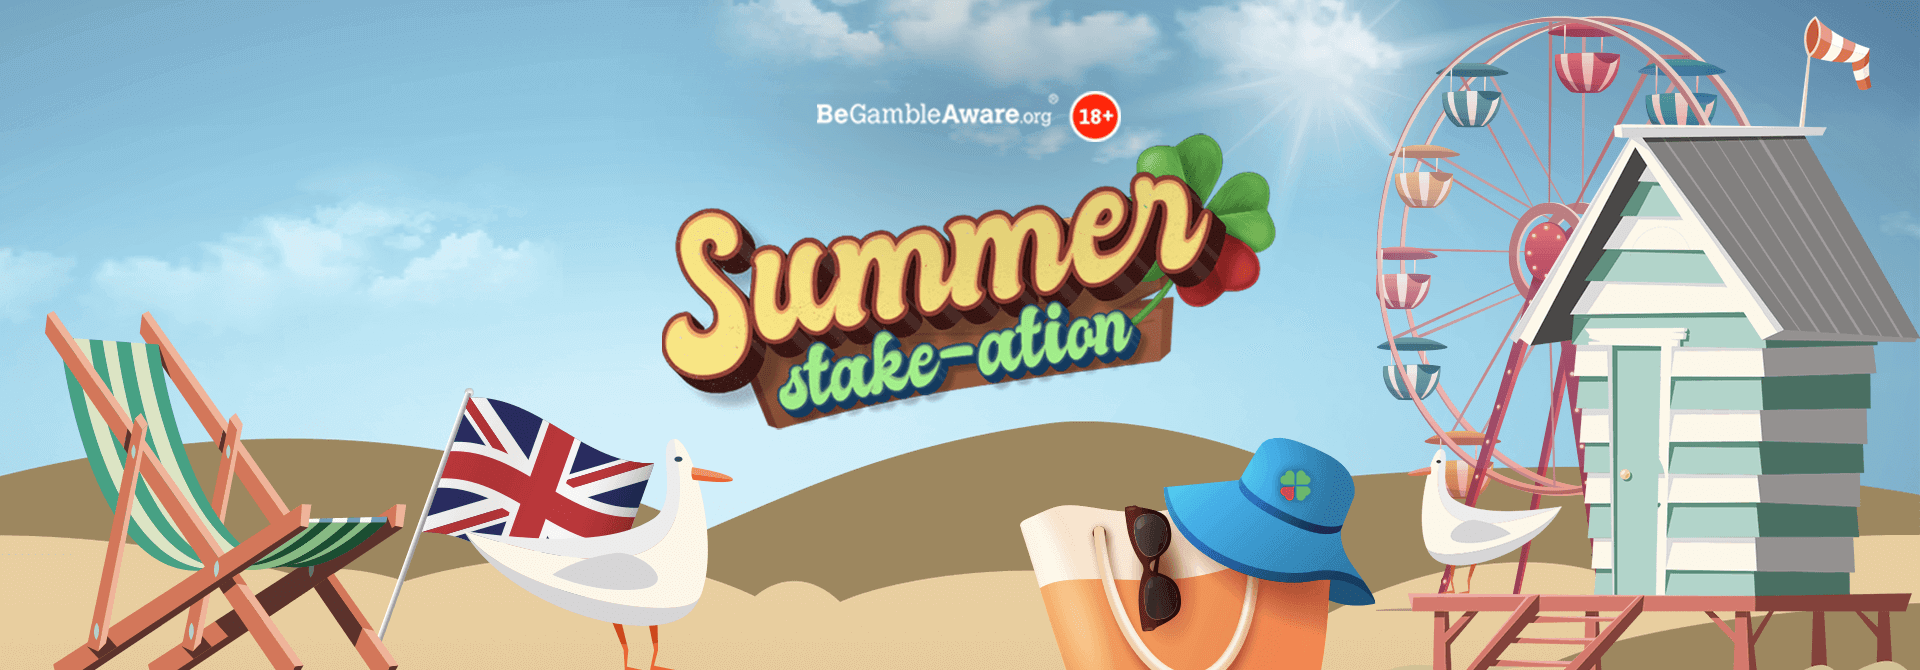 Sun, sea and spinning with our Summer Stake-ation!